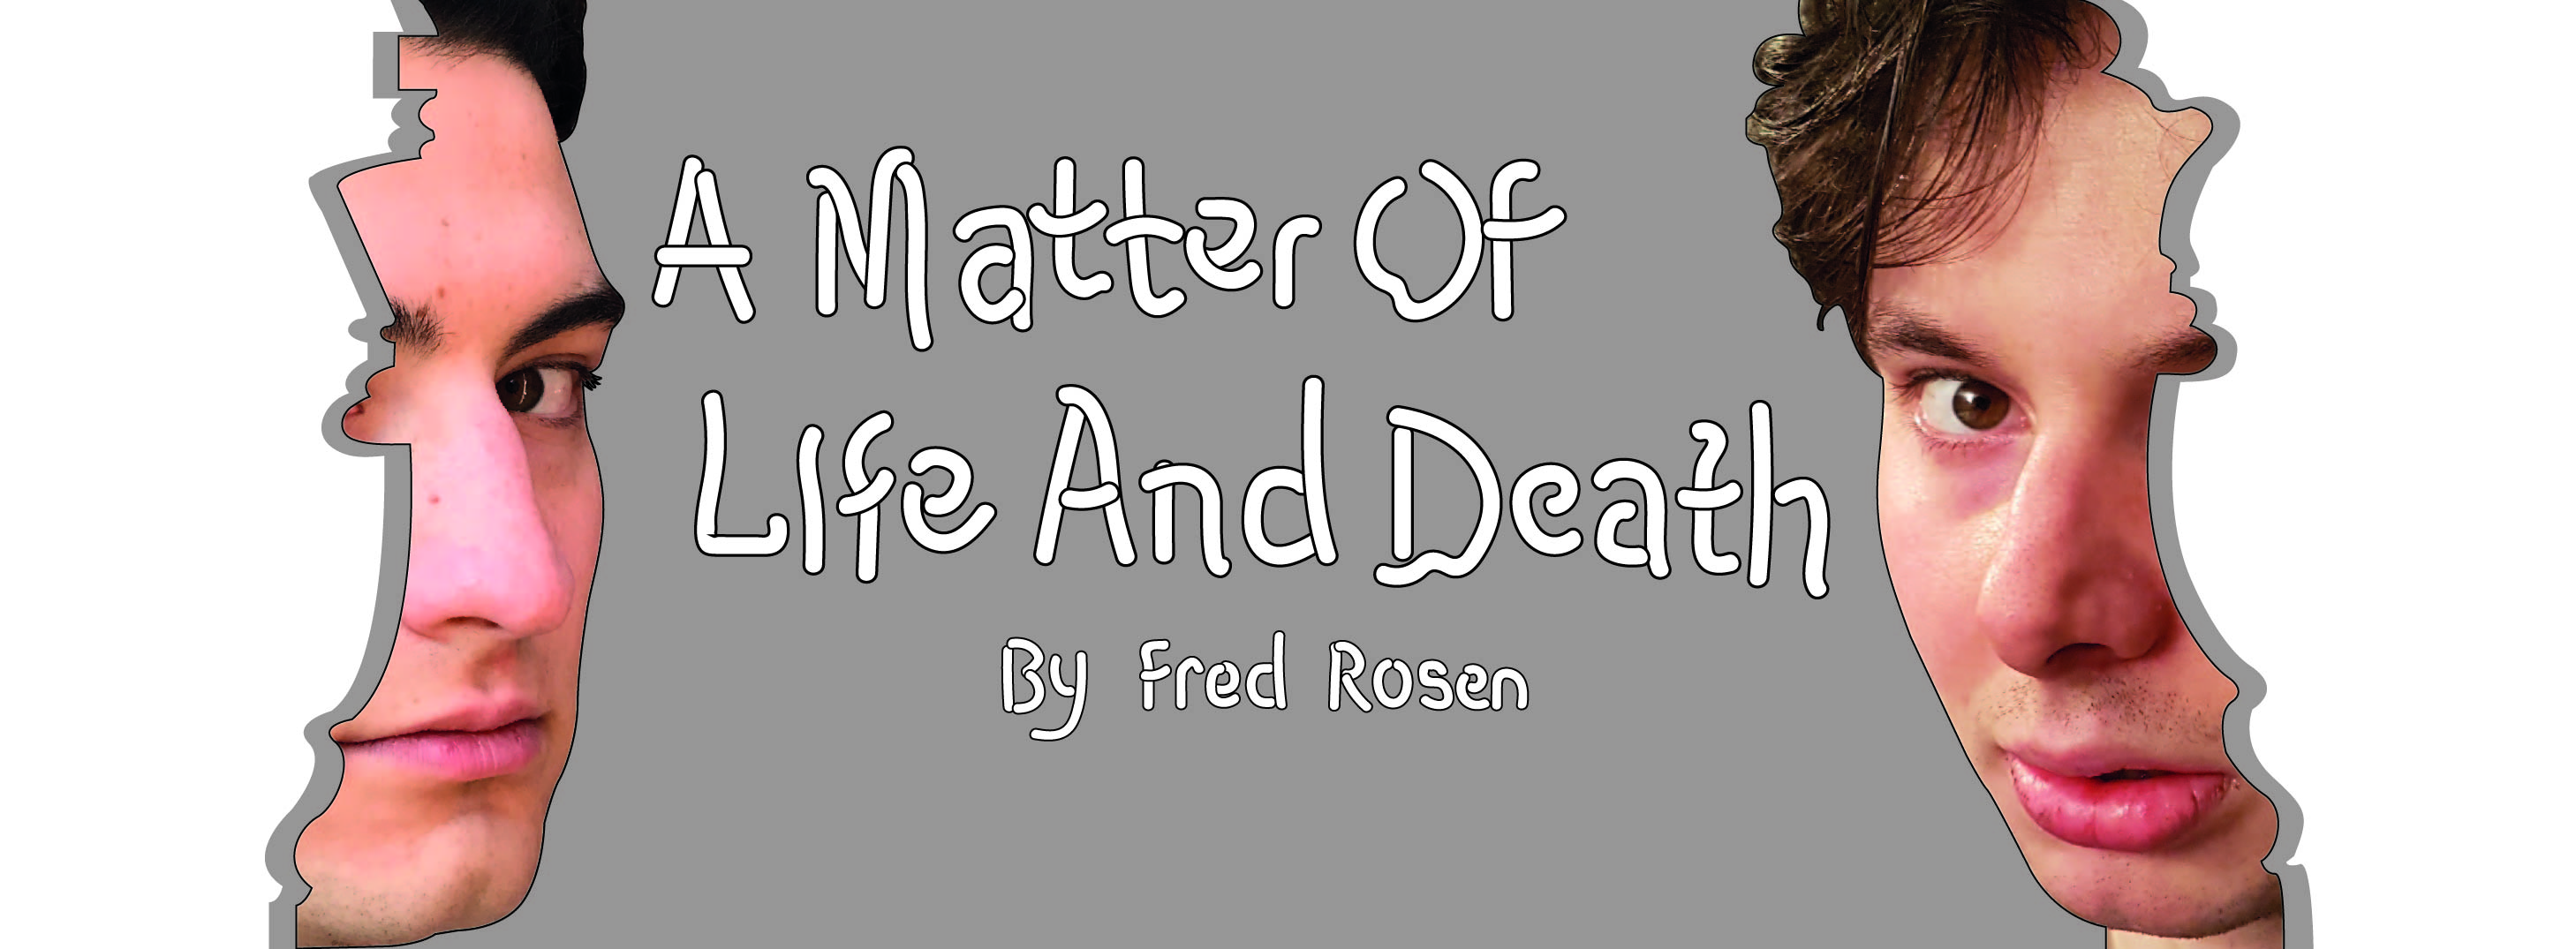 Matter of Life and Death Banner